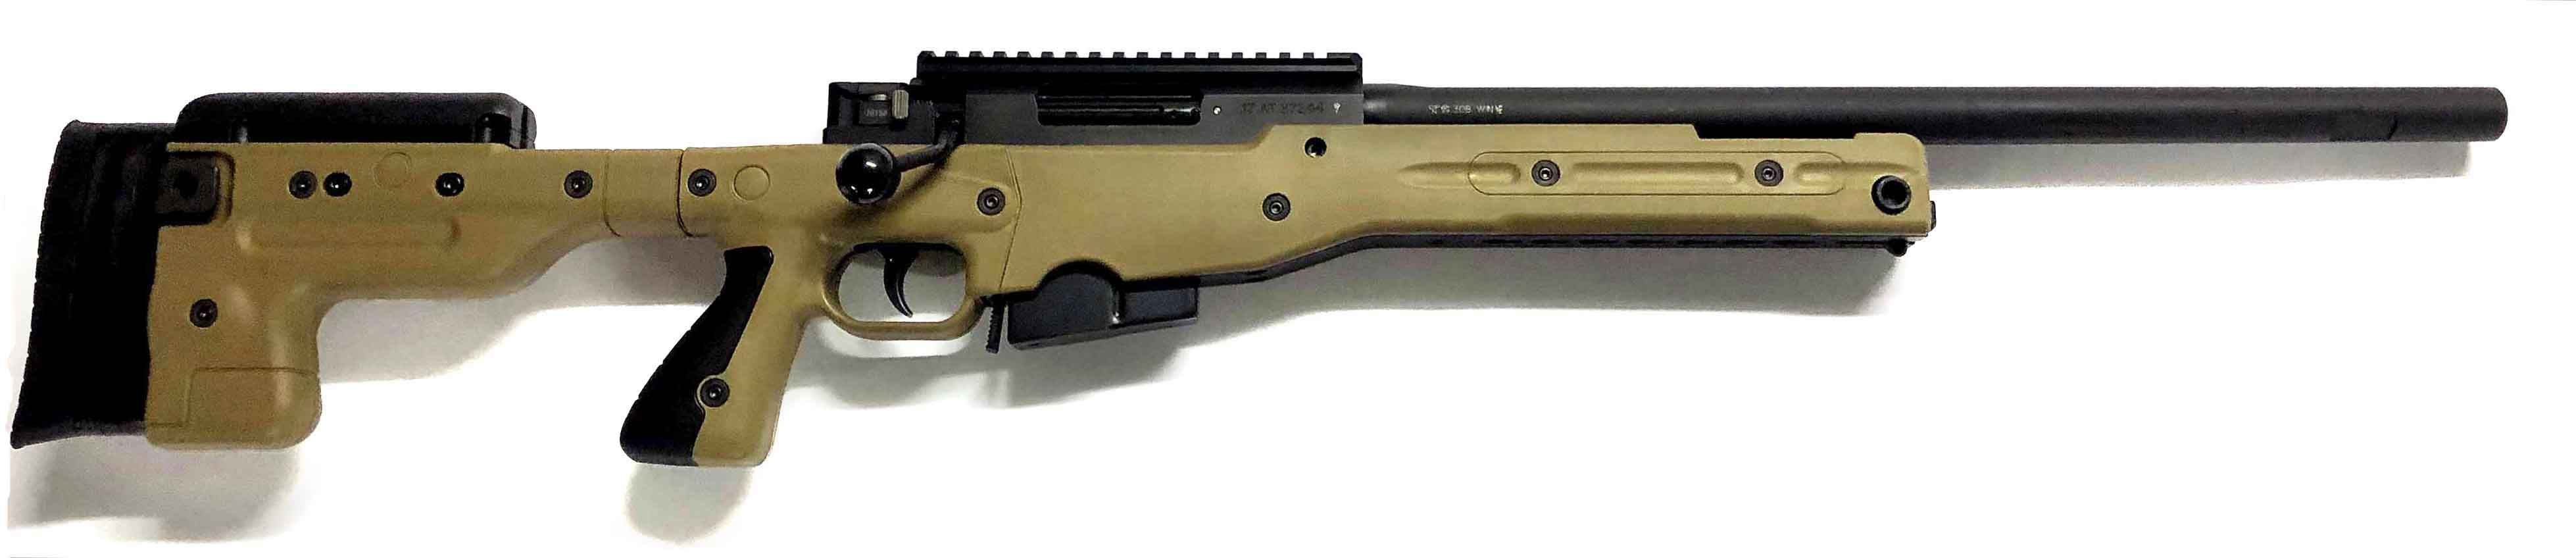 Accuracy International AT Rifle - Fixed Dark Earth Stock - 308 Win 20 inch non threaded bbl -|AT-308WNFIDE20PL0M